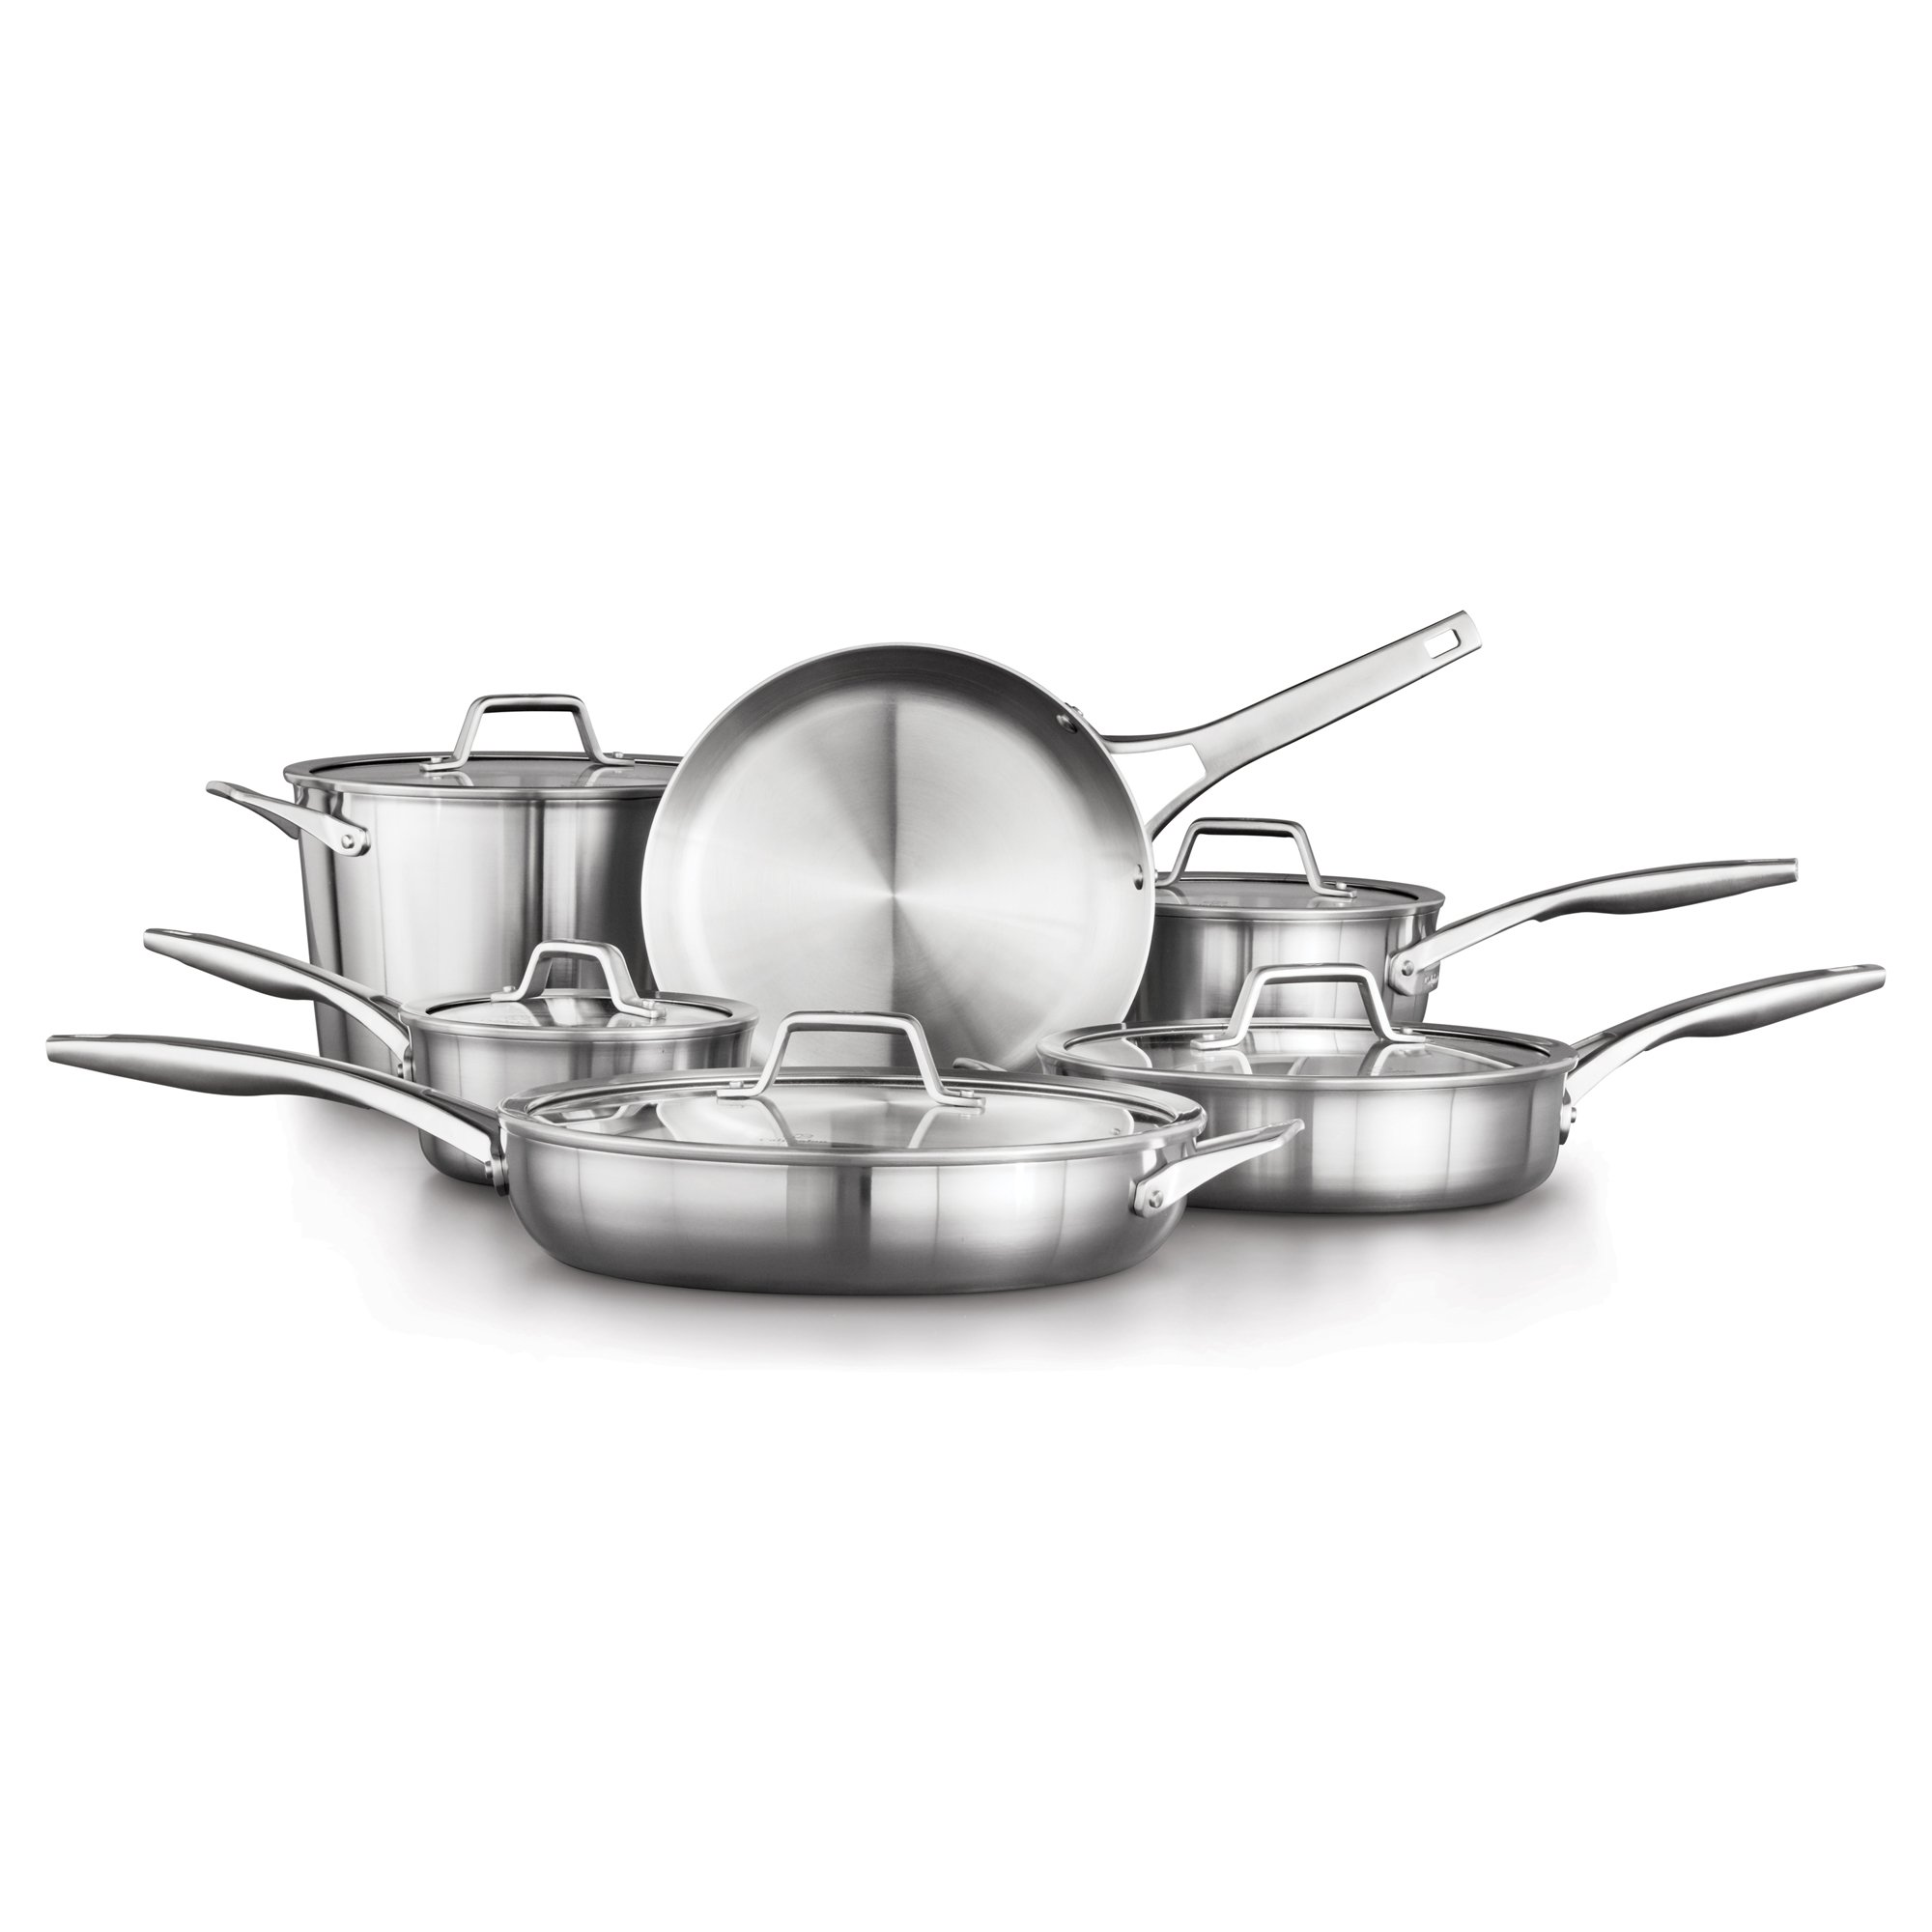 Calphalon Premier Stainless Steel 11-Piece Cookware Set